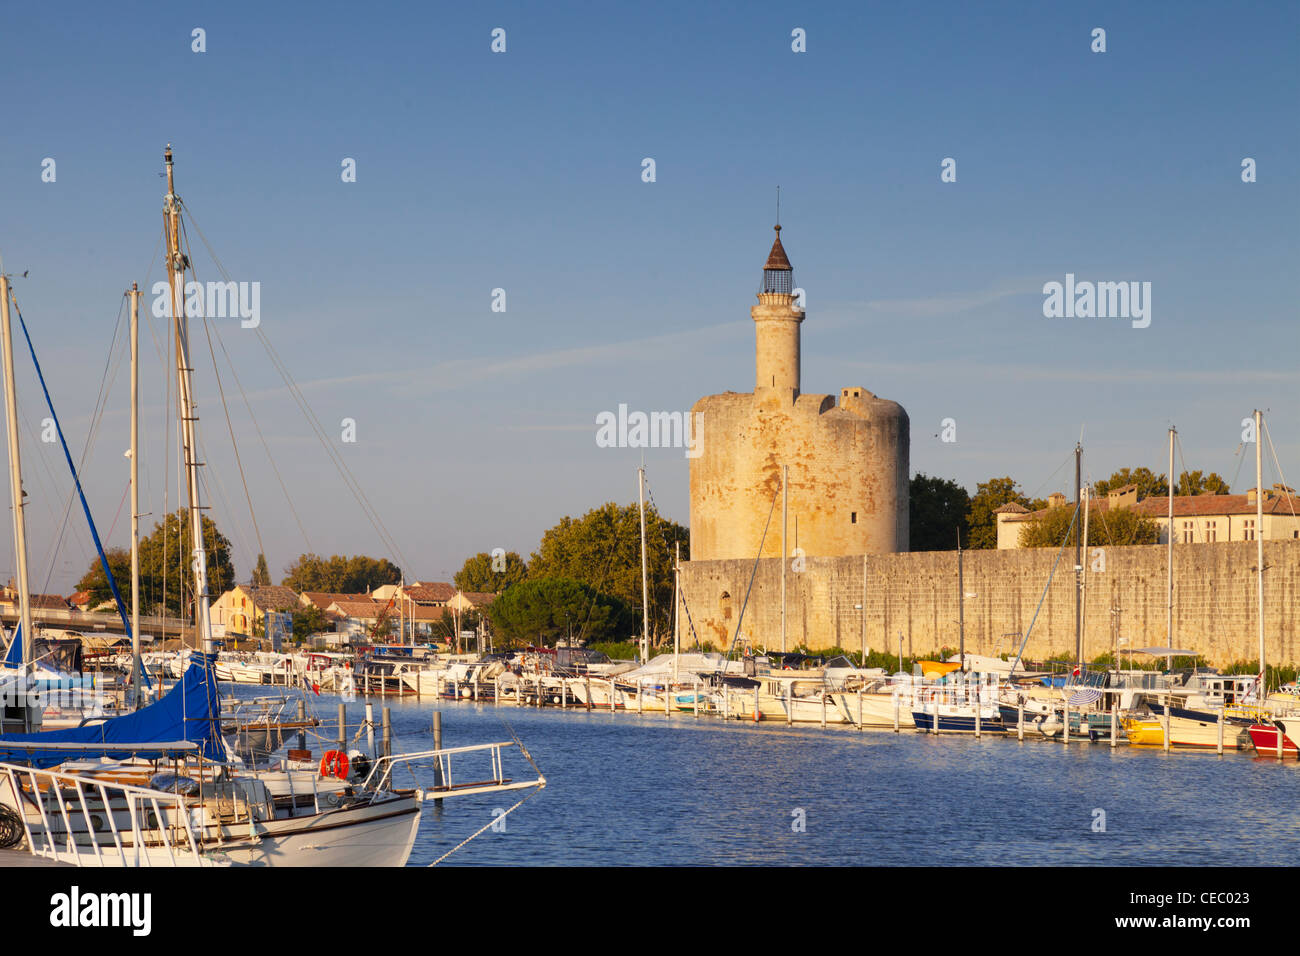 Completed in 1248, the Constance Tower is the oldest part of Aigues-Mortes defences. - Stock Image